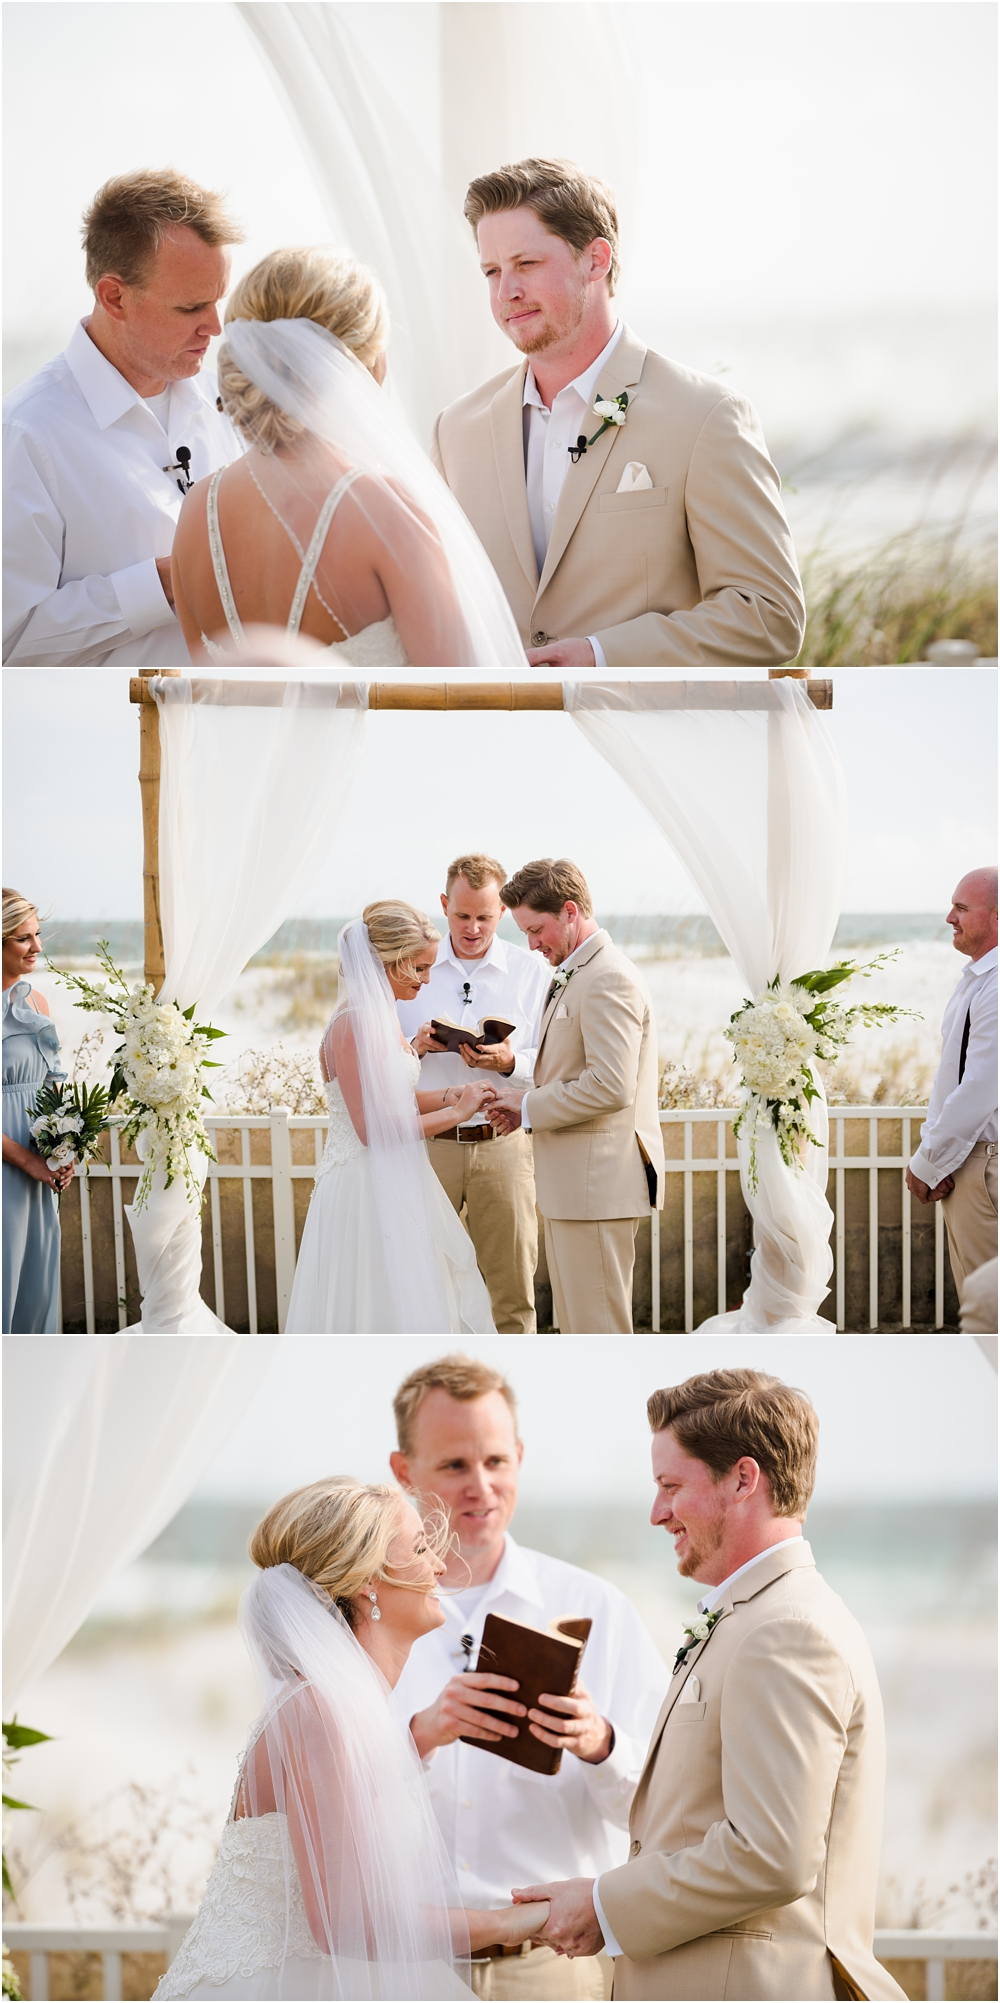 dillard-florida-wedding-photographer-panama-city-beach-dothan-tallahassee-kiersten-grant-photography-109.jpg